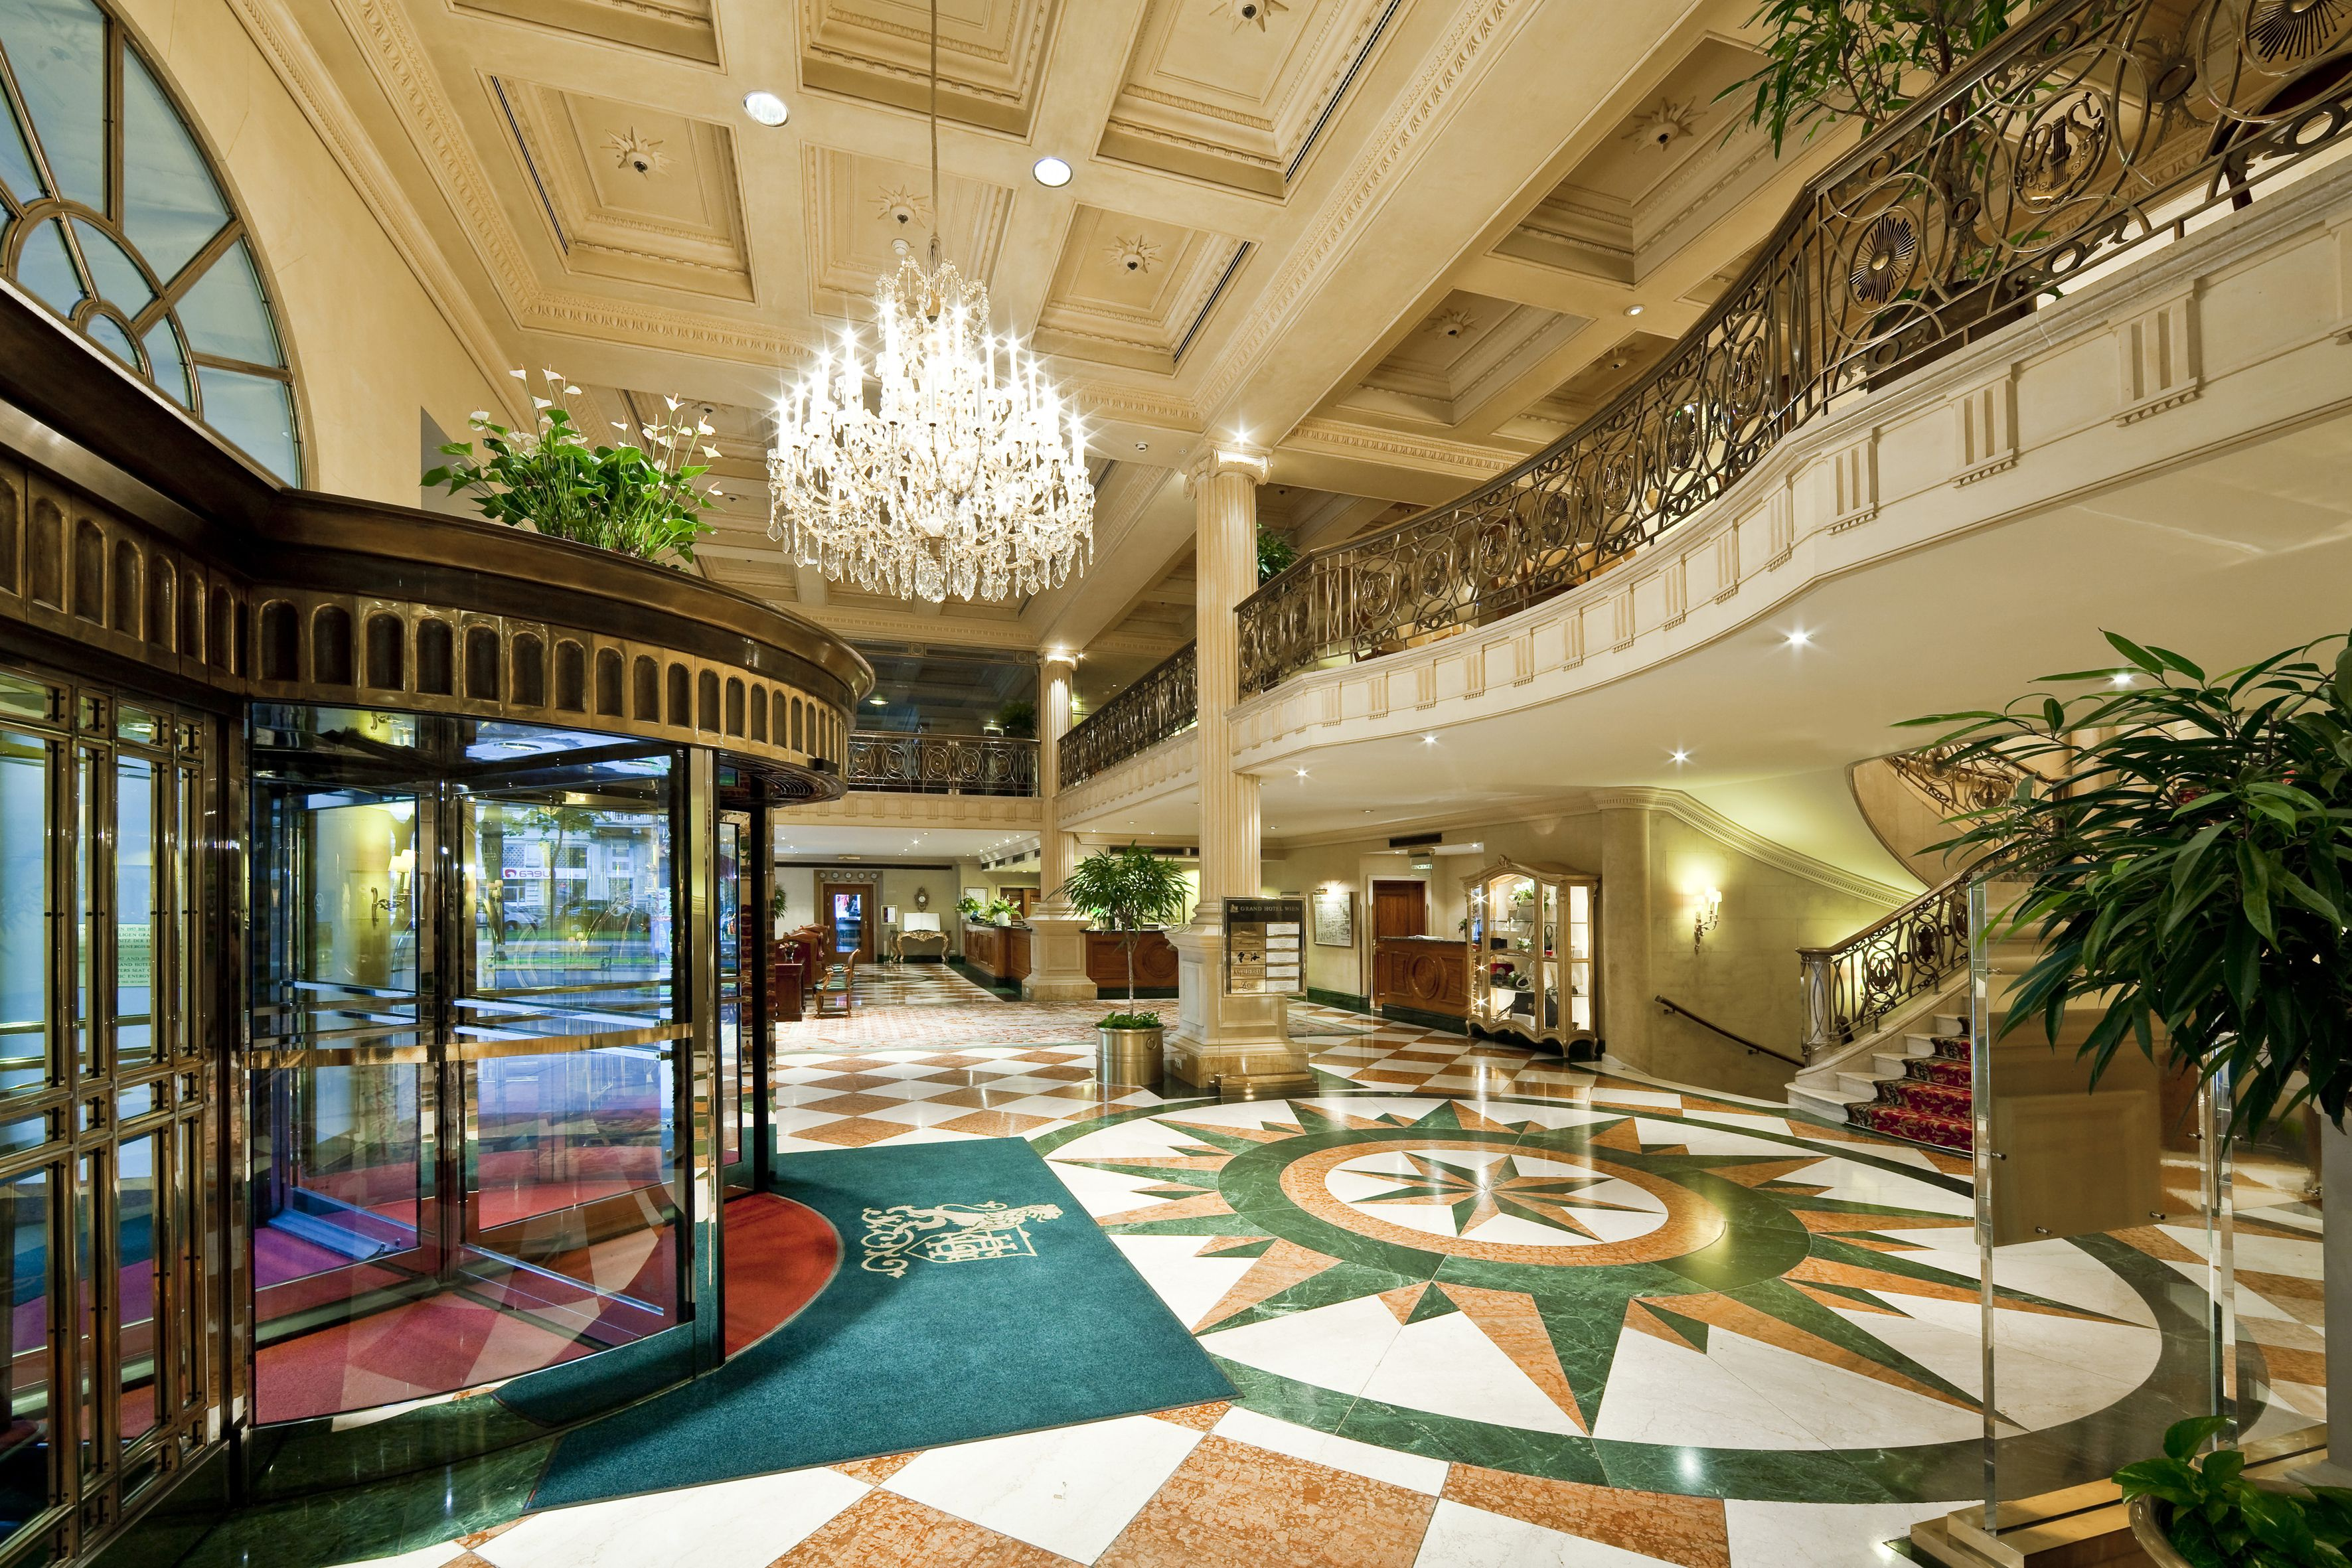 Lobby At 5 Star Hotel Grand Wien This S Address Is Kaerntner Ring 9 Innere Stadt Vienna And Have 205 Rooms